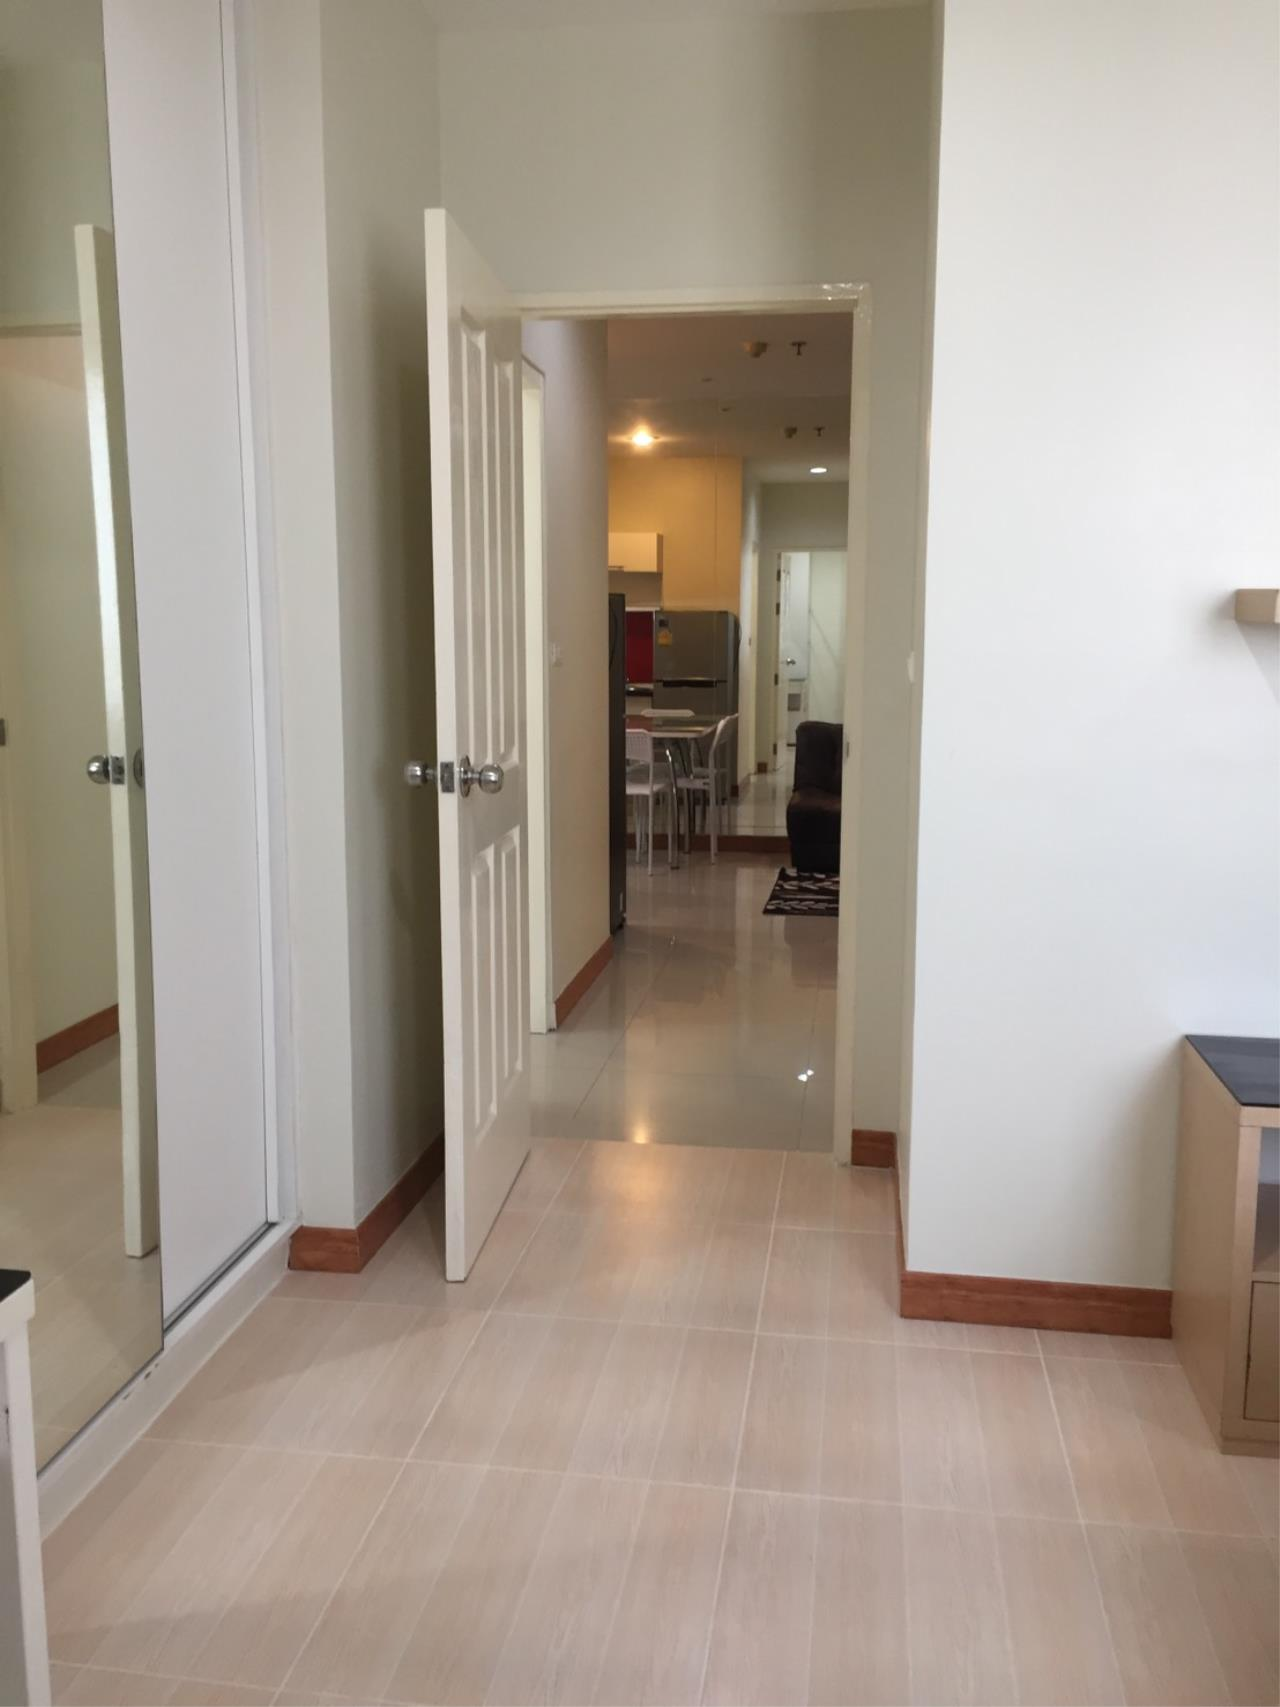 Property Thai Sale Agency's @City Condo sukhumvit 101/1 5